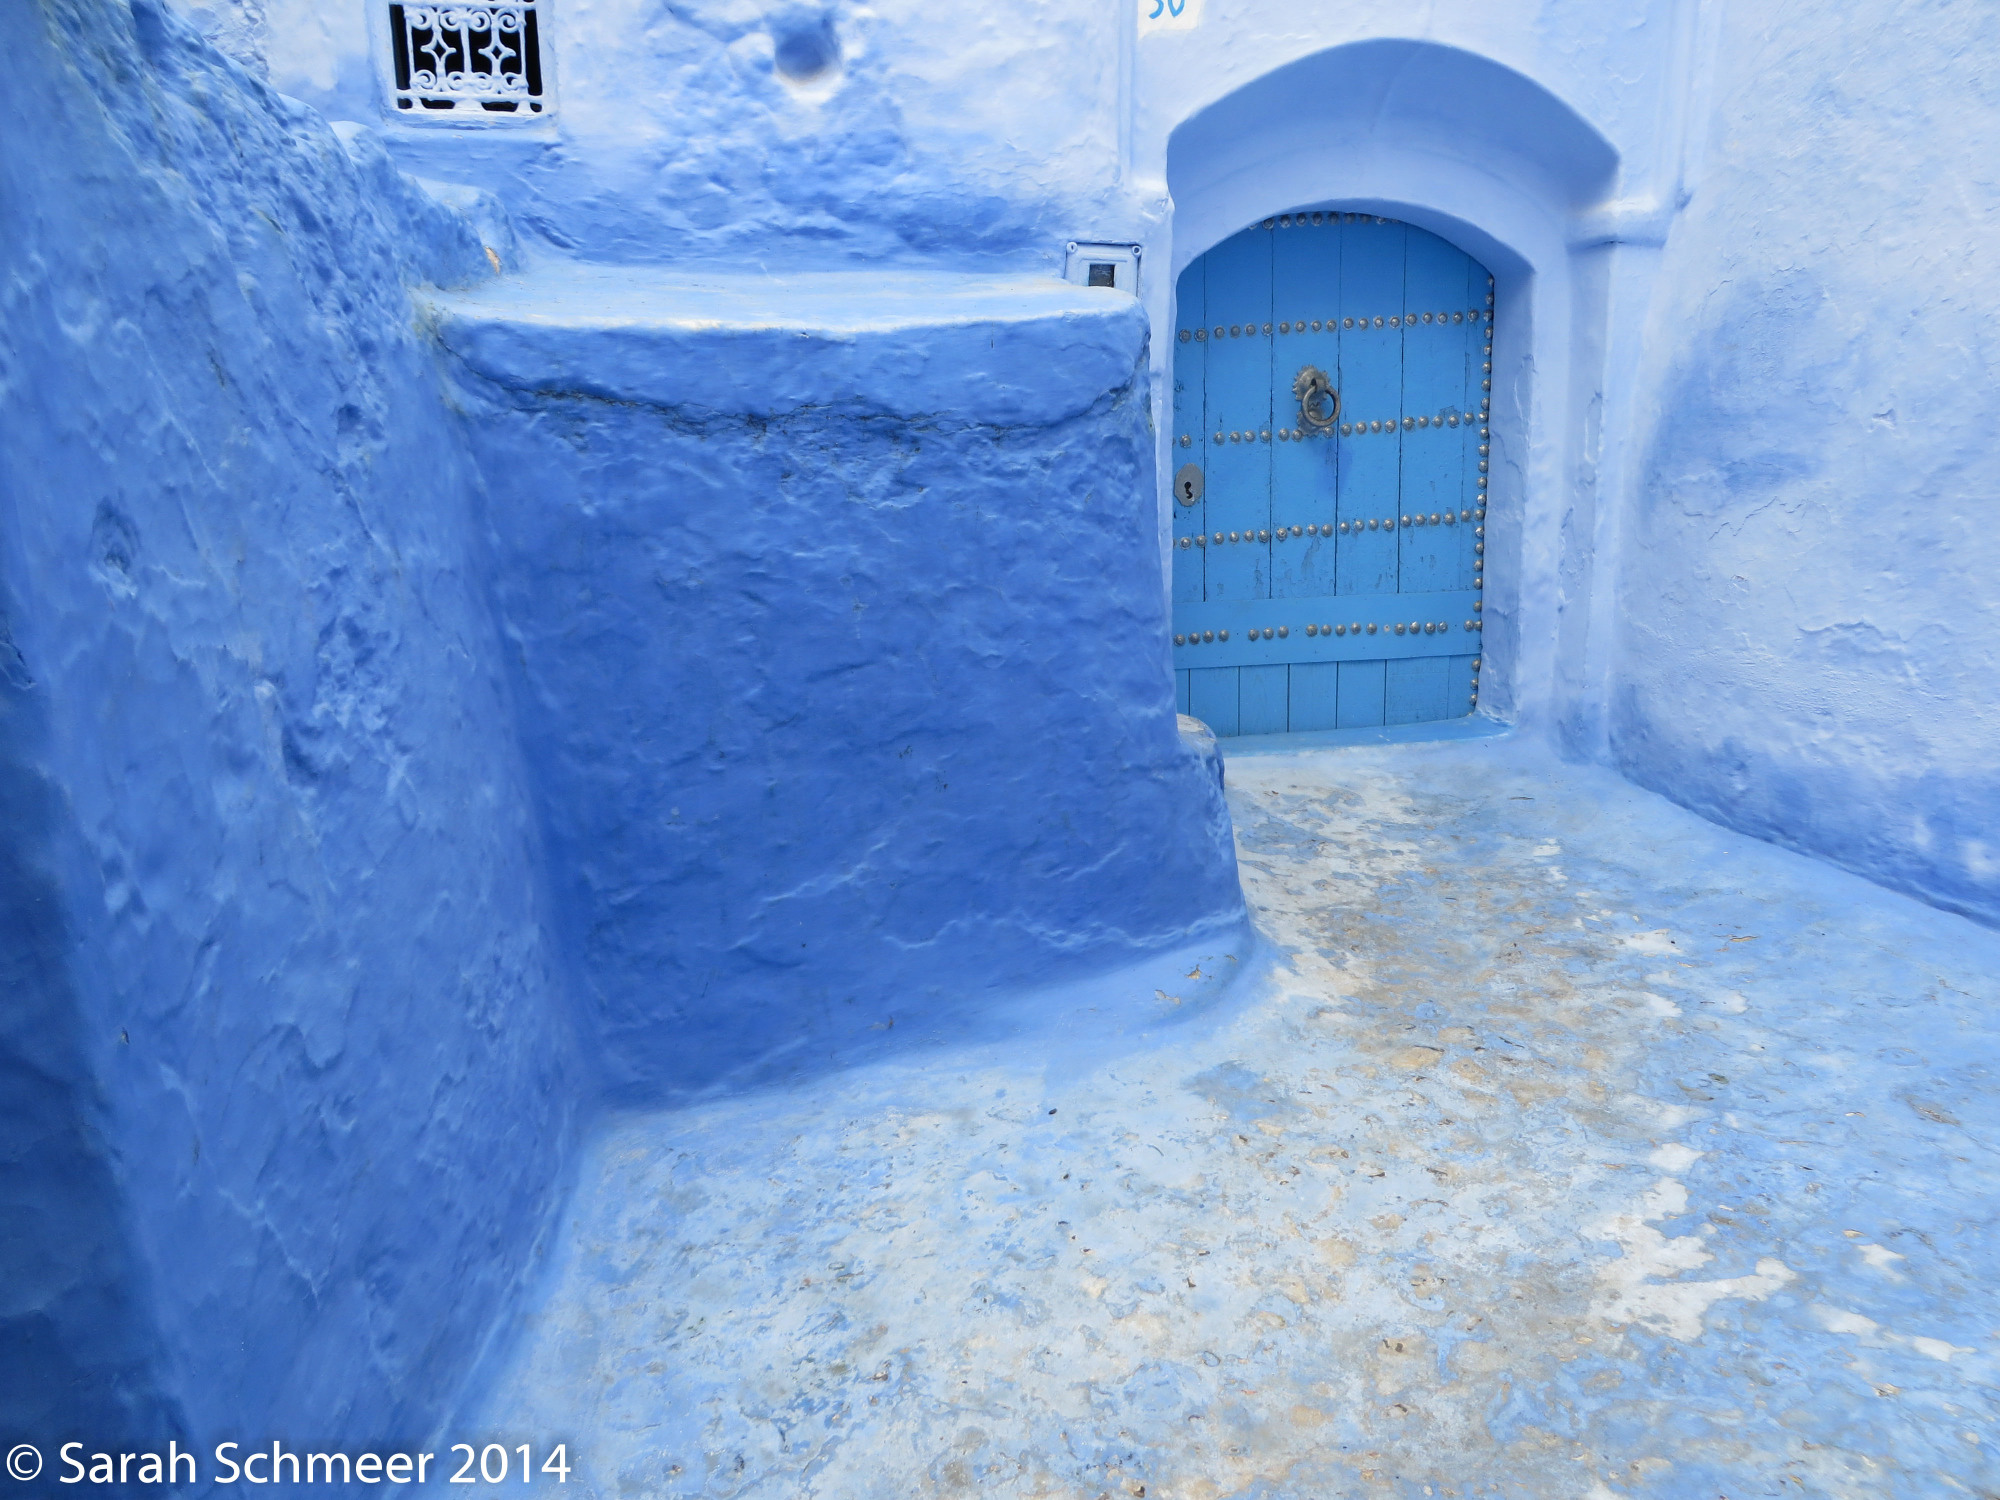 Chefchaouen, the beautiful blue city in the Rif Mountains of Morocco.